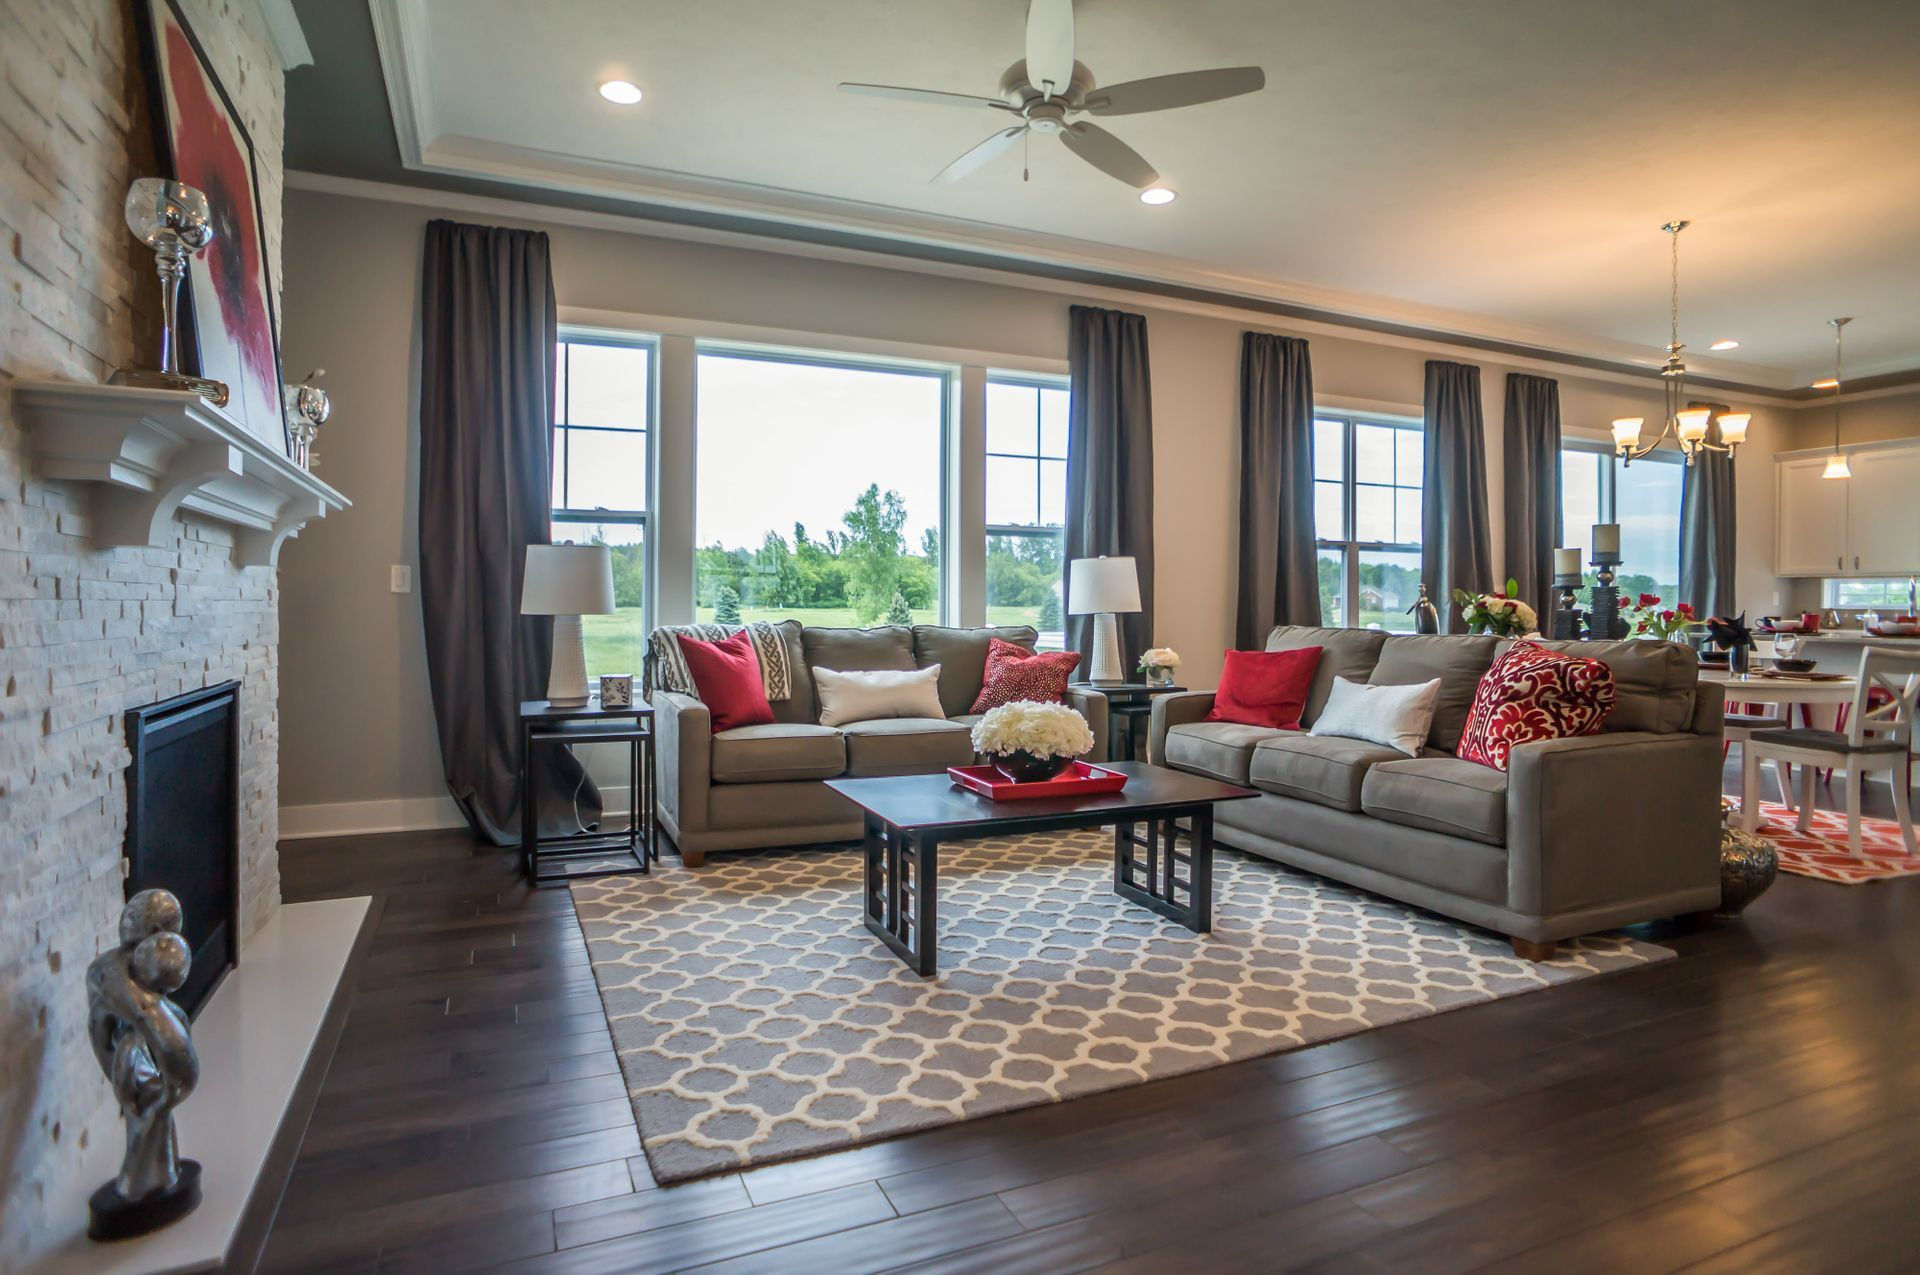 The Maxwell by Mayberry Homes:The Maxwell by Mayberry Homes